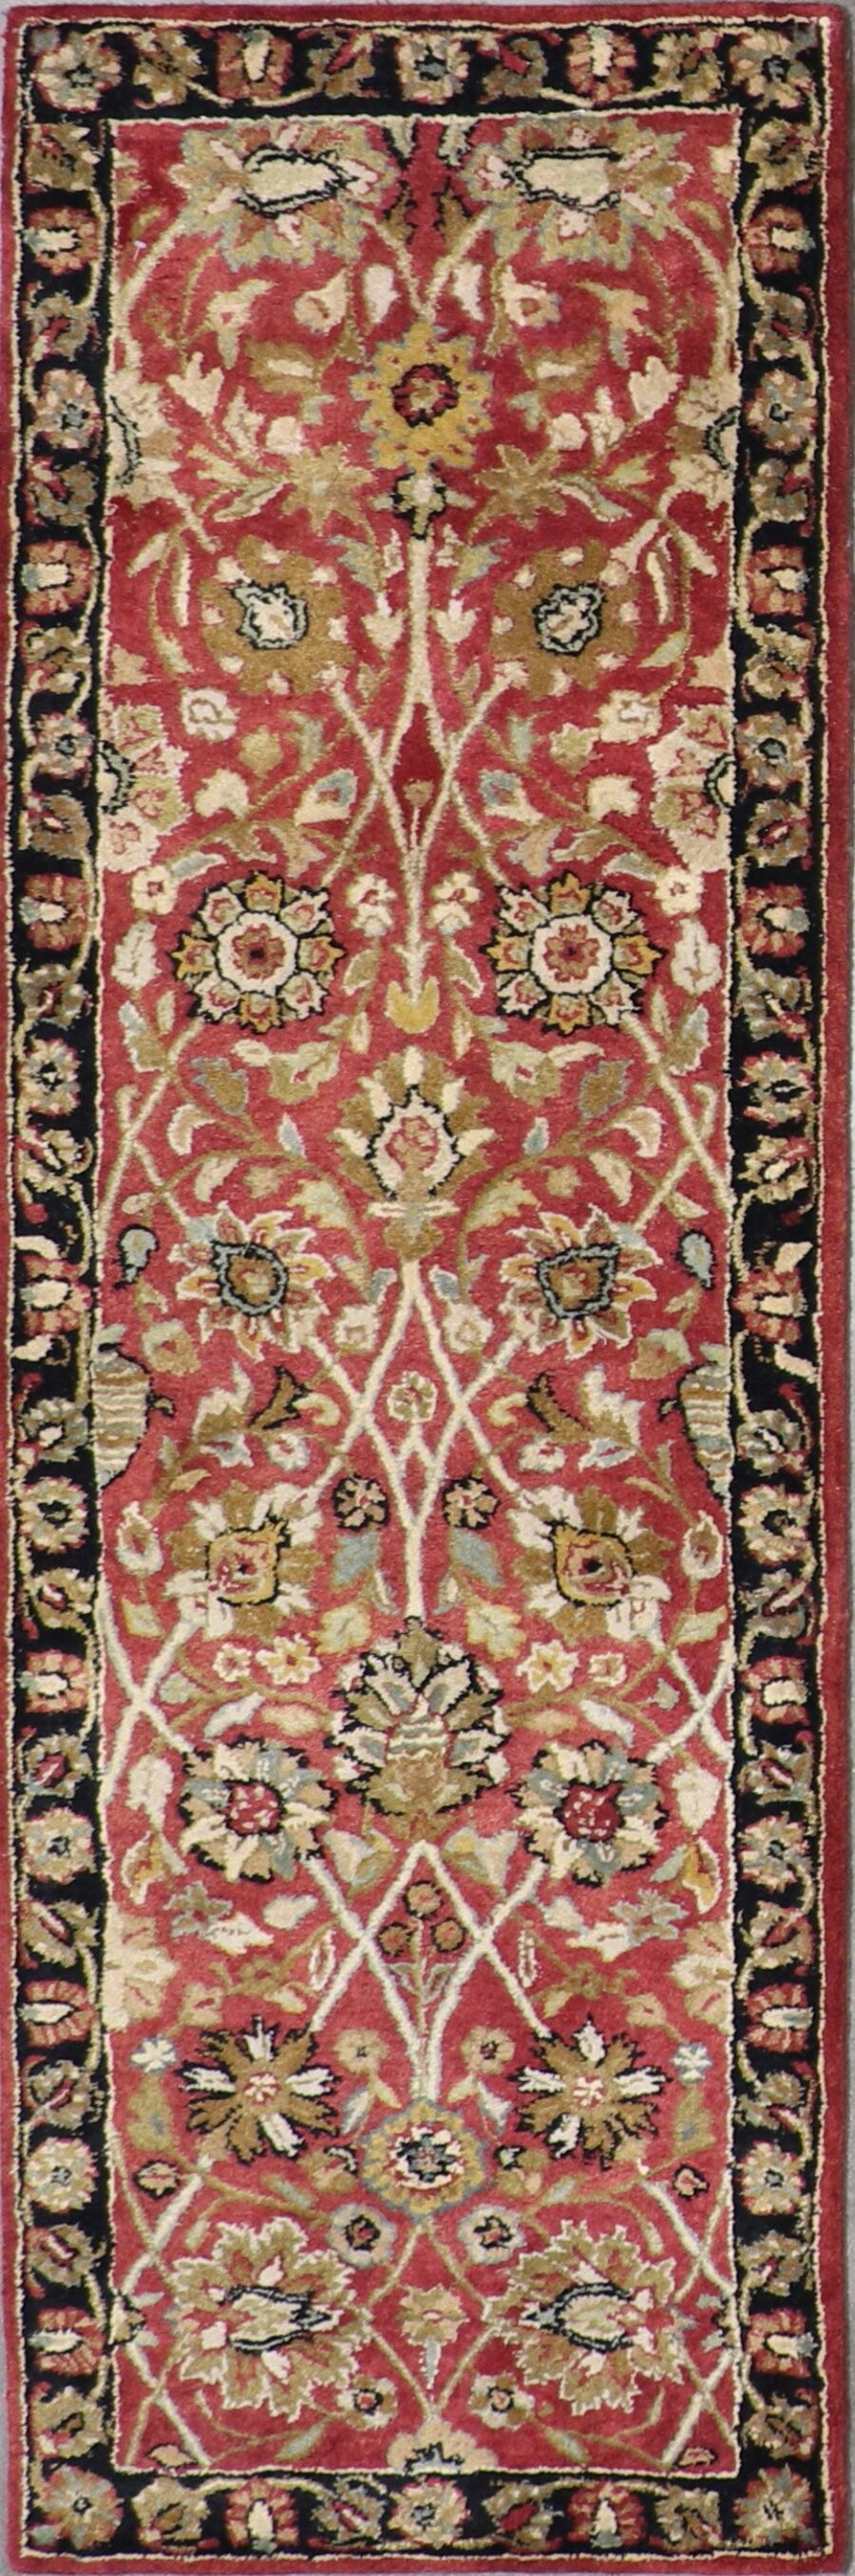 """2'5""""x8' Decorative Wool Hand-Tufted Rug - Direct Rug Import 